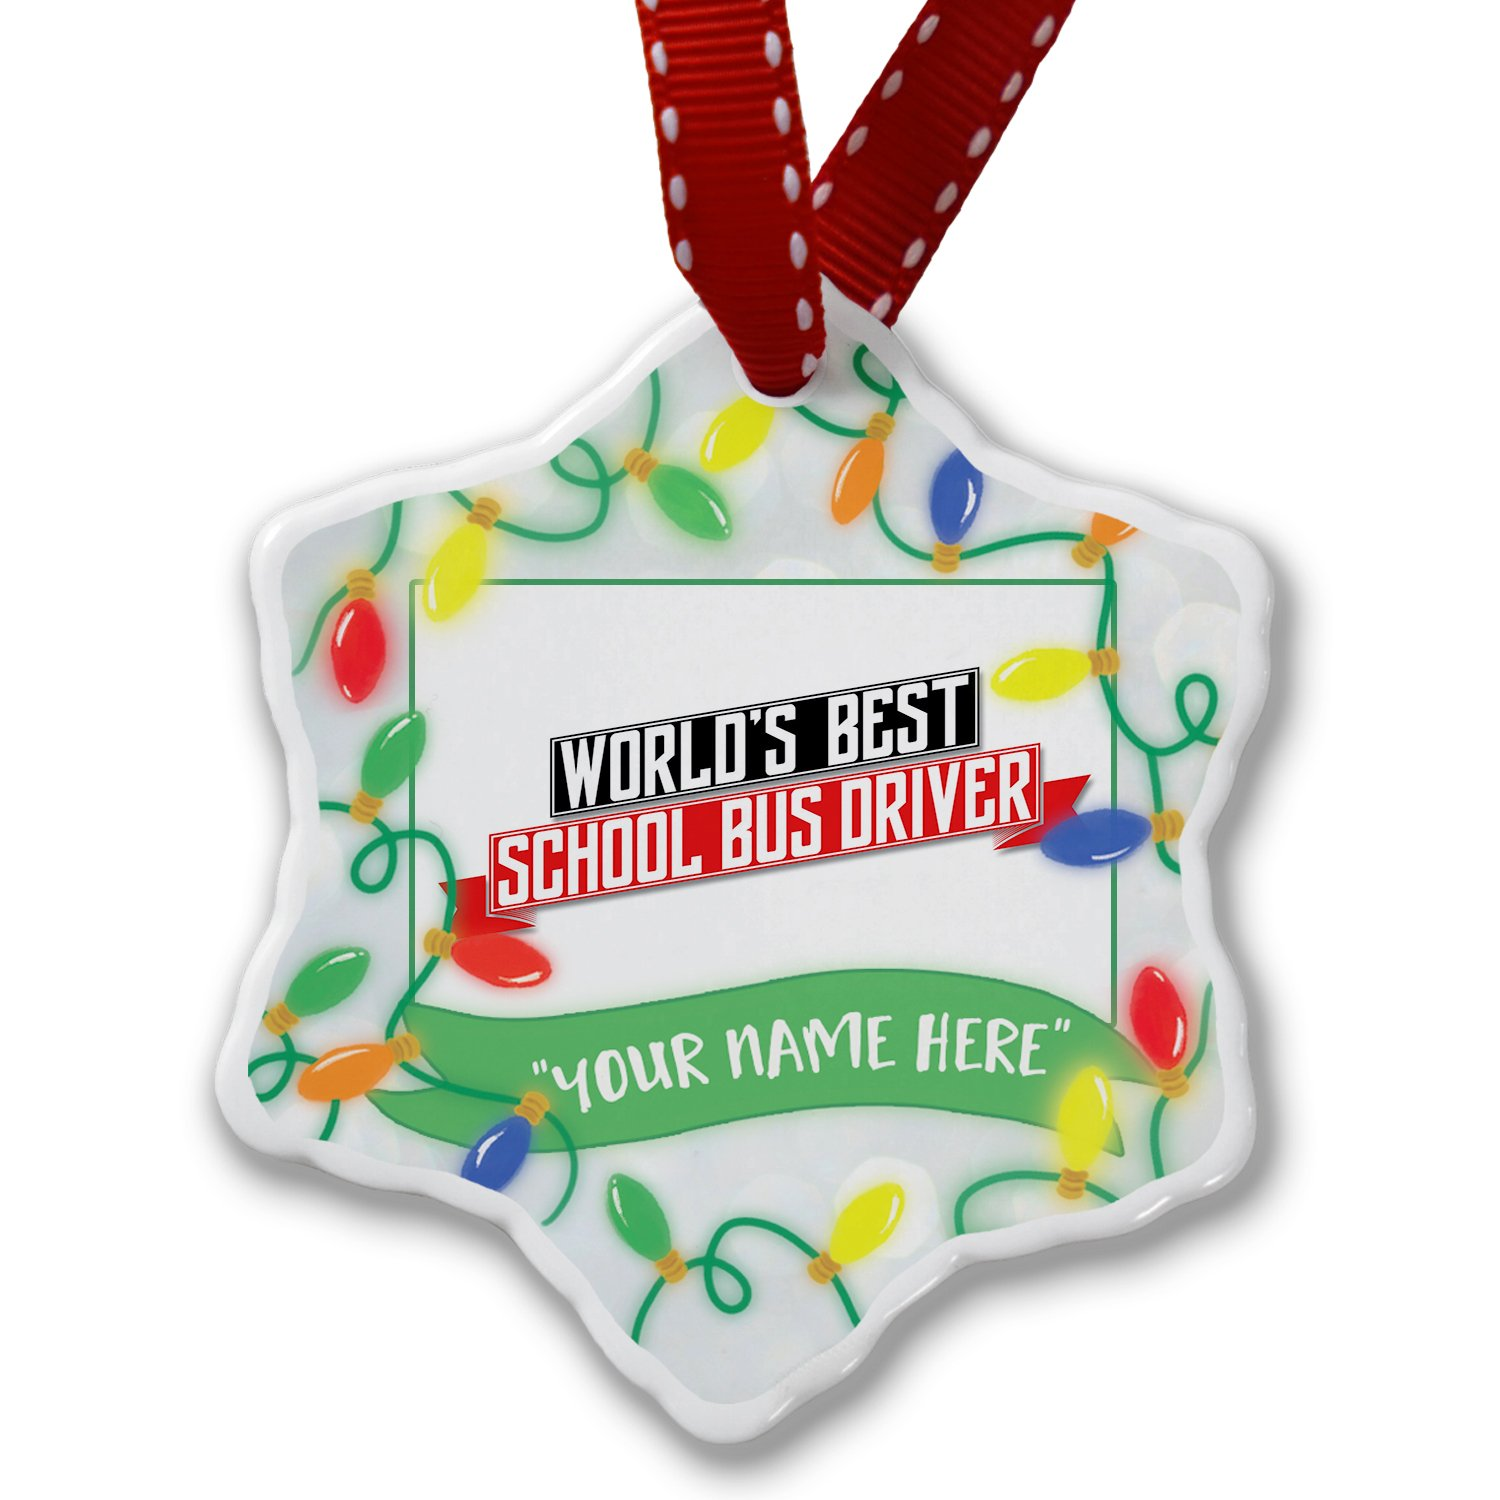 Personalized Name Christmas Ornament, Worlds Best School Bus Driver NEONBLOND